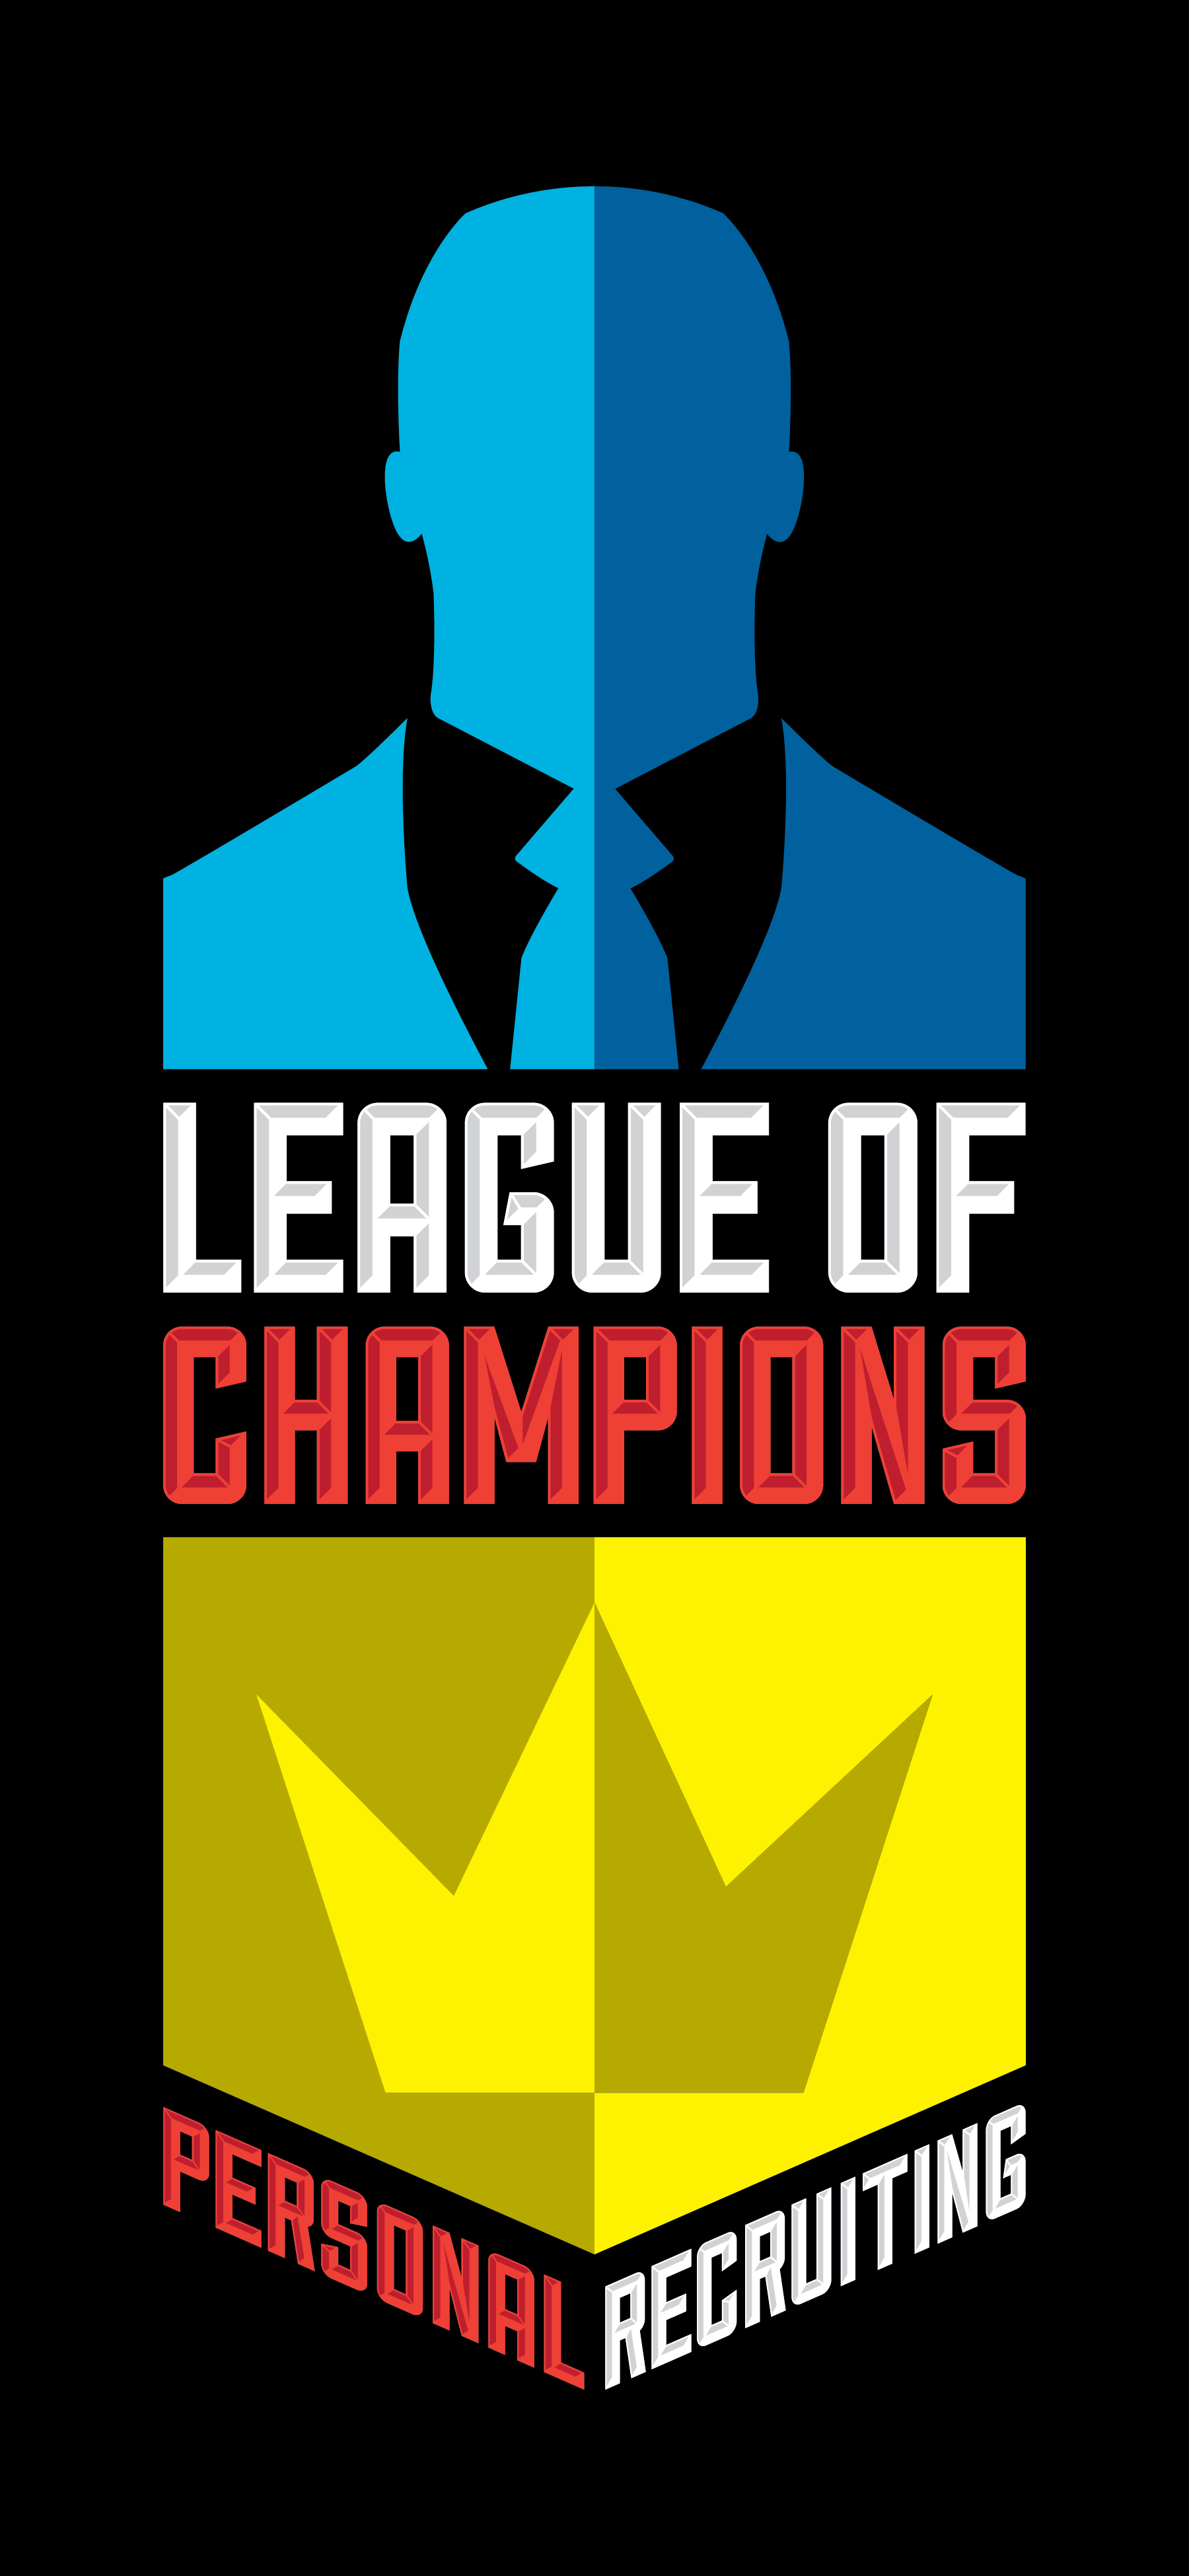 Jonathan mcginnis league of champions logo the june 2015 issue of spotlight is based its design on the league of champions logo altavistaventures Image collections